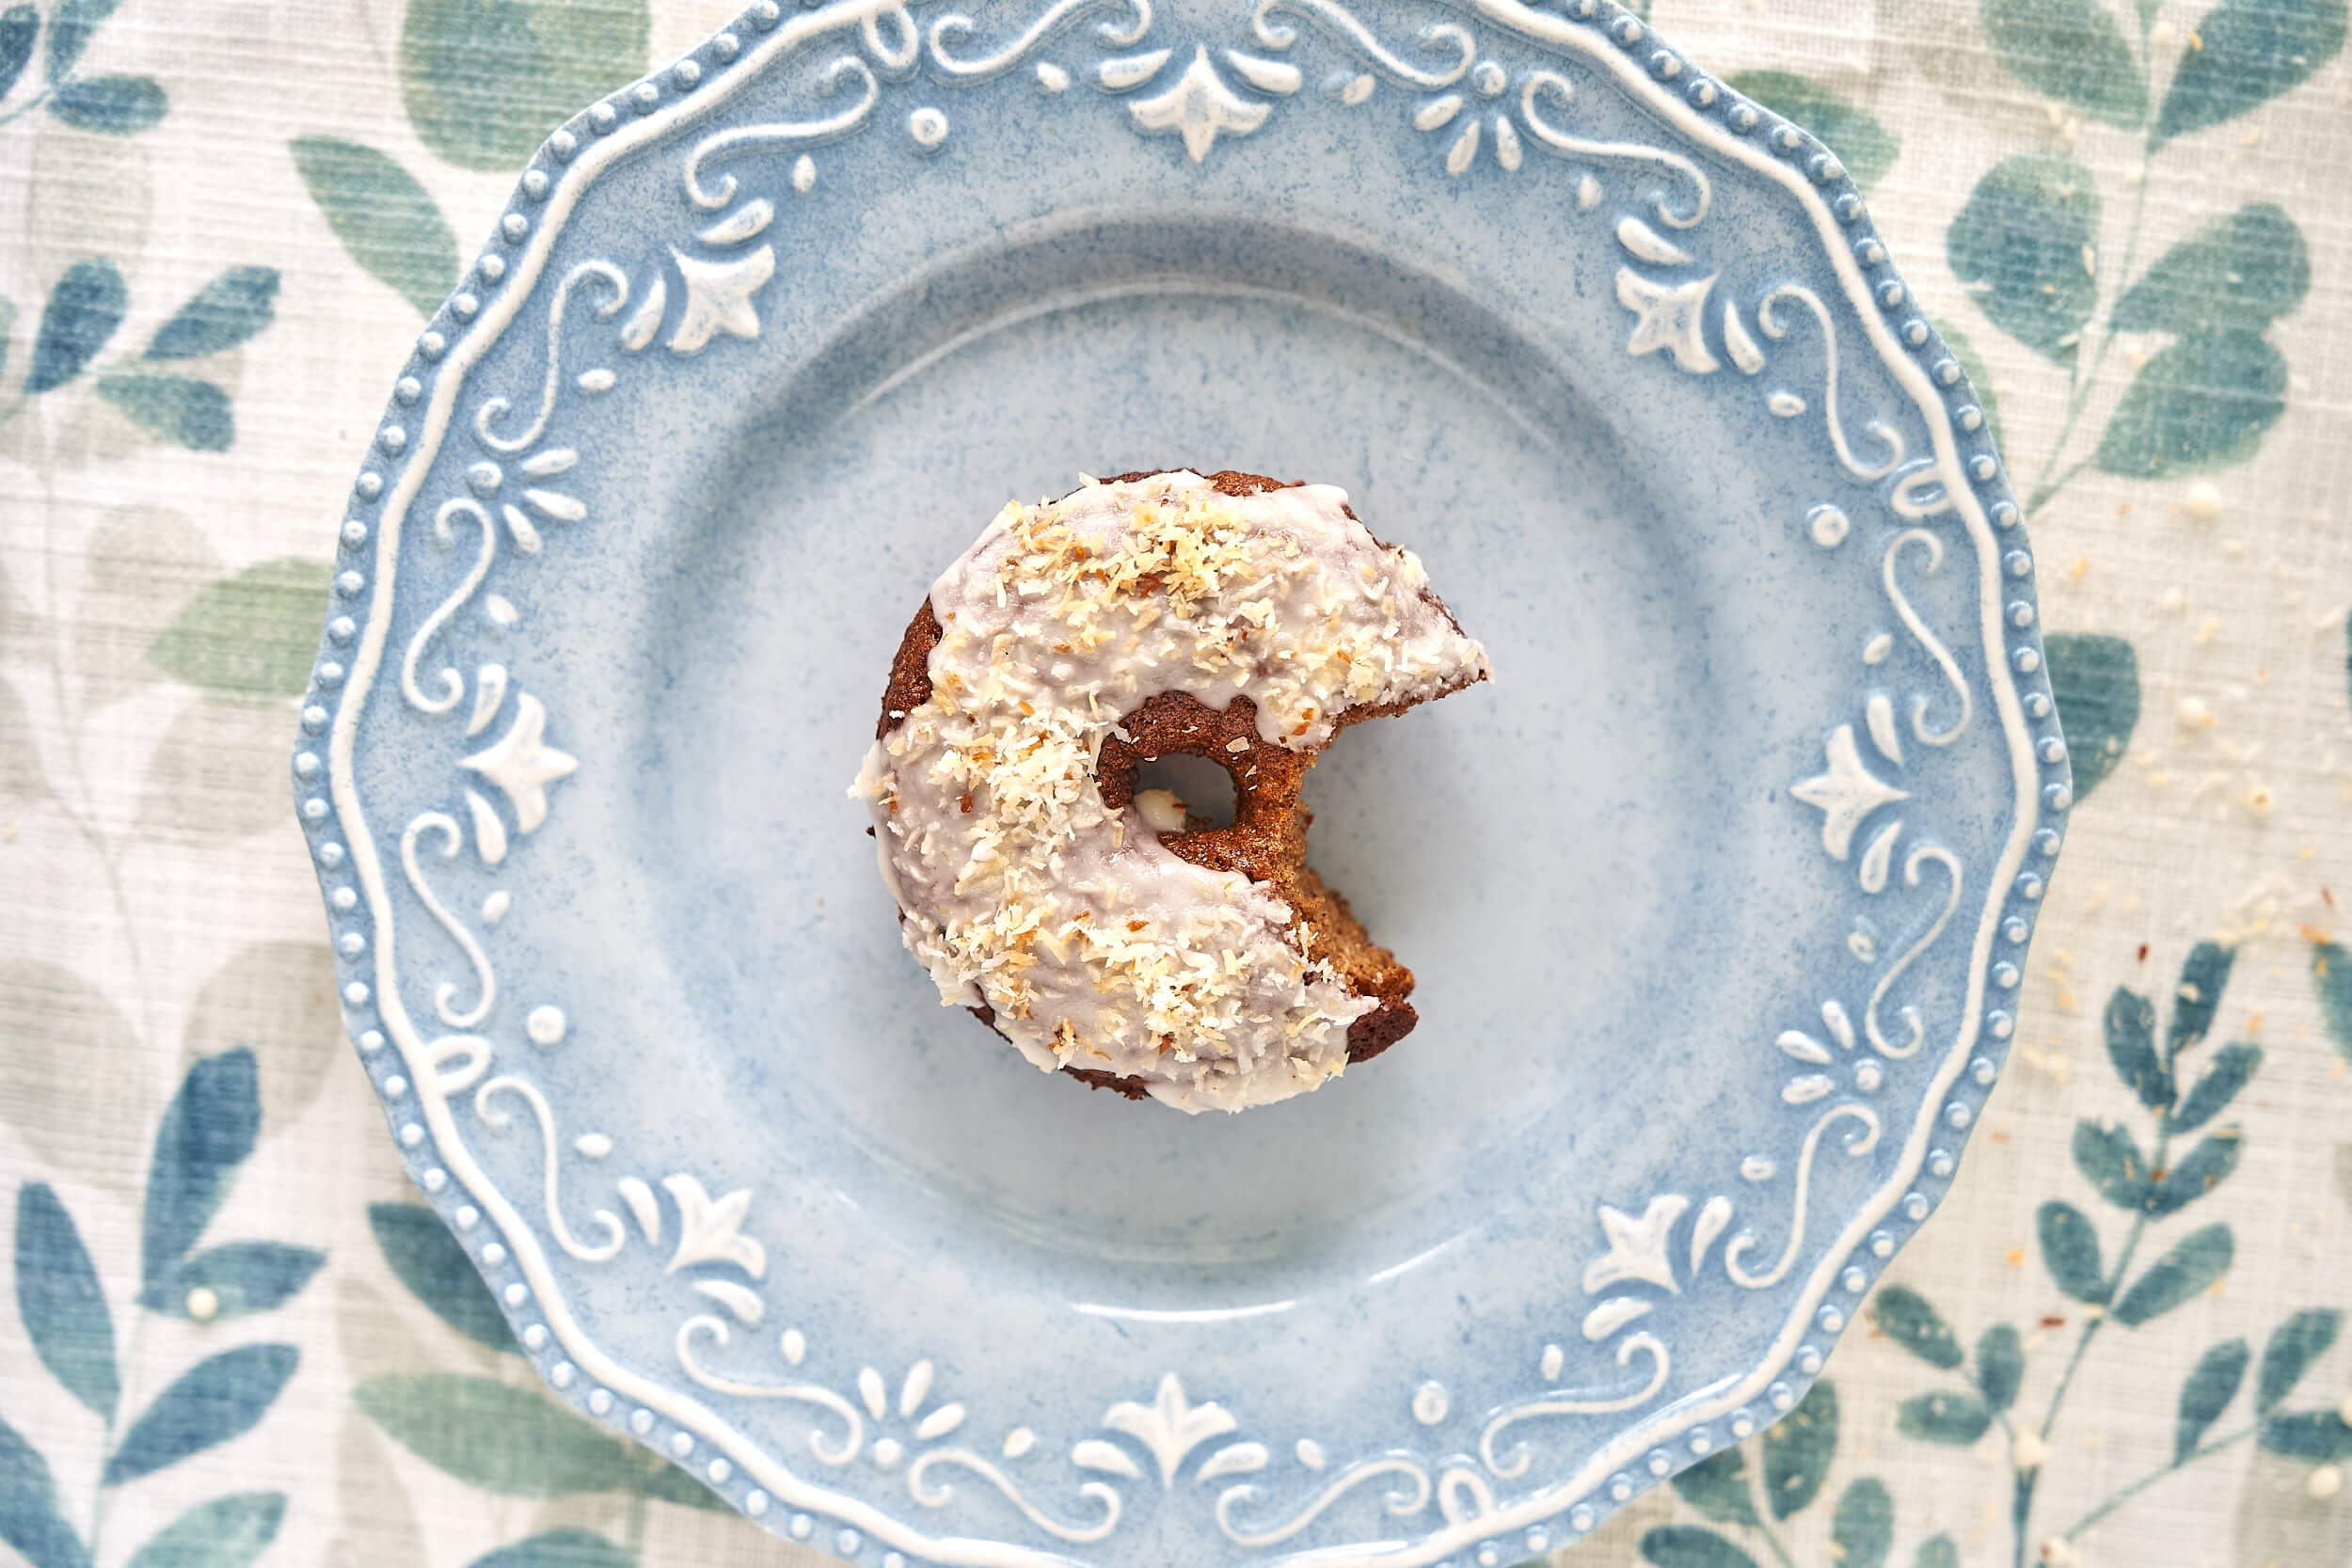 Gluten-free donut on a blue plate.